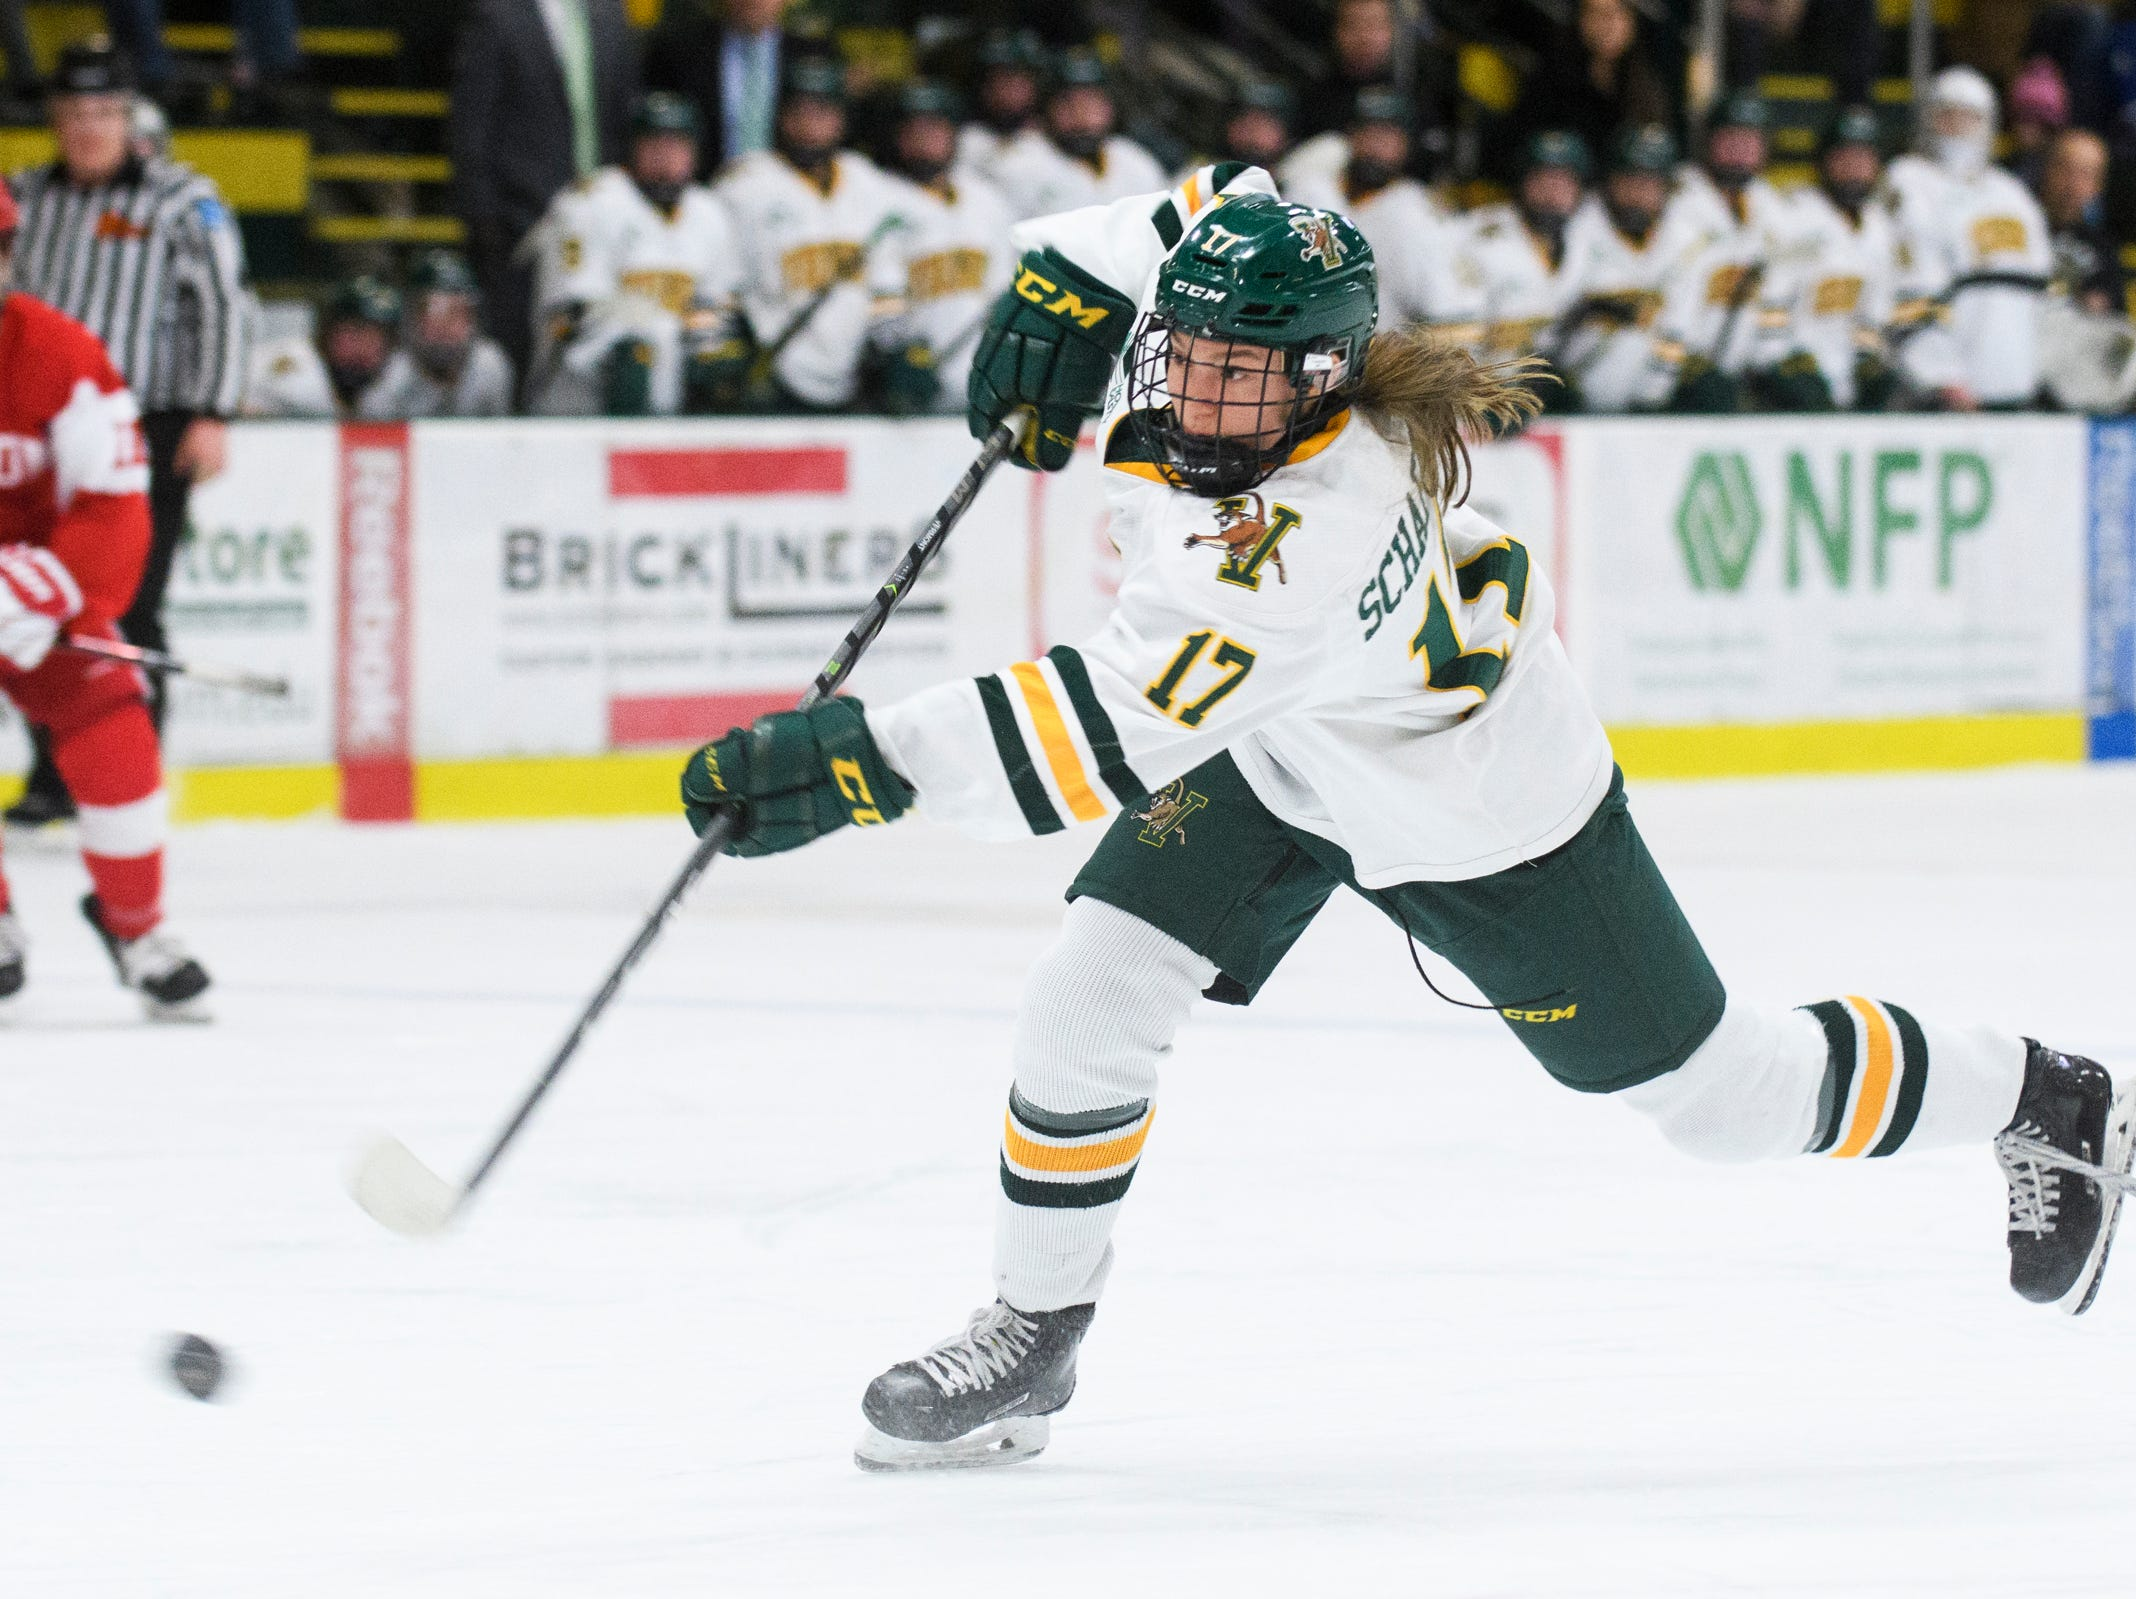 Vermont's VTheresa Schafzahl (17) shoots the puck during the women's hockey game between the Boston Terriers and the Vermont Catamounts at Gutterson Field House on Friday night February 1, 2019 in Burlington, Vermont.